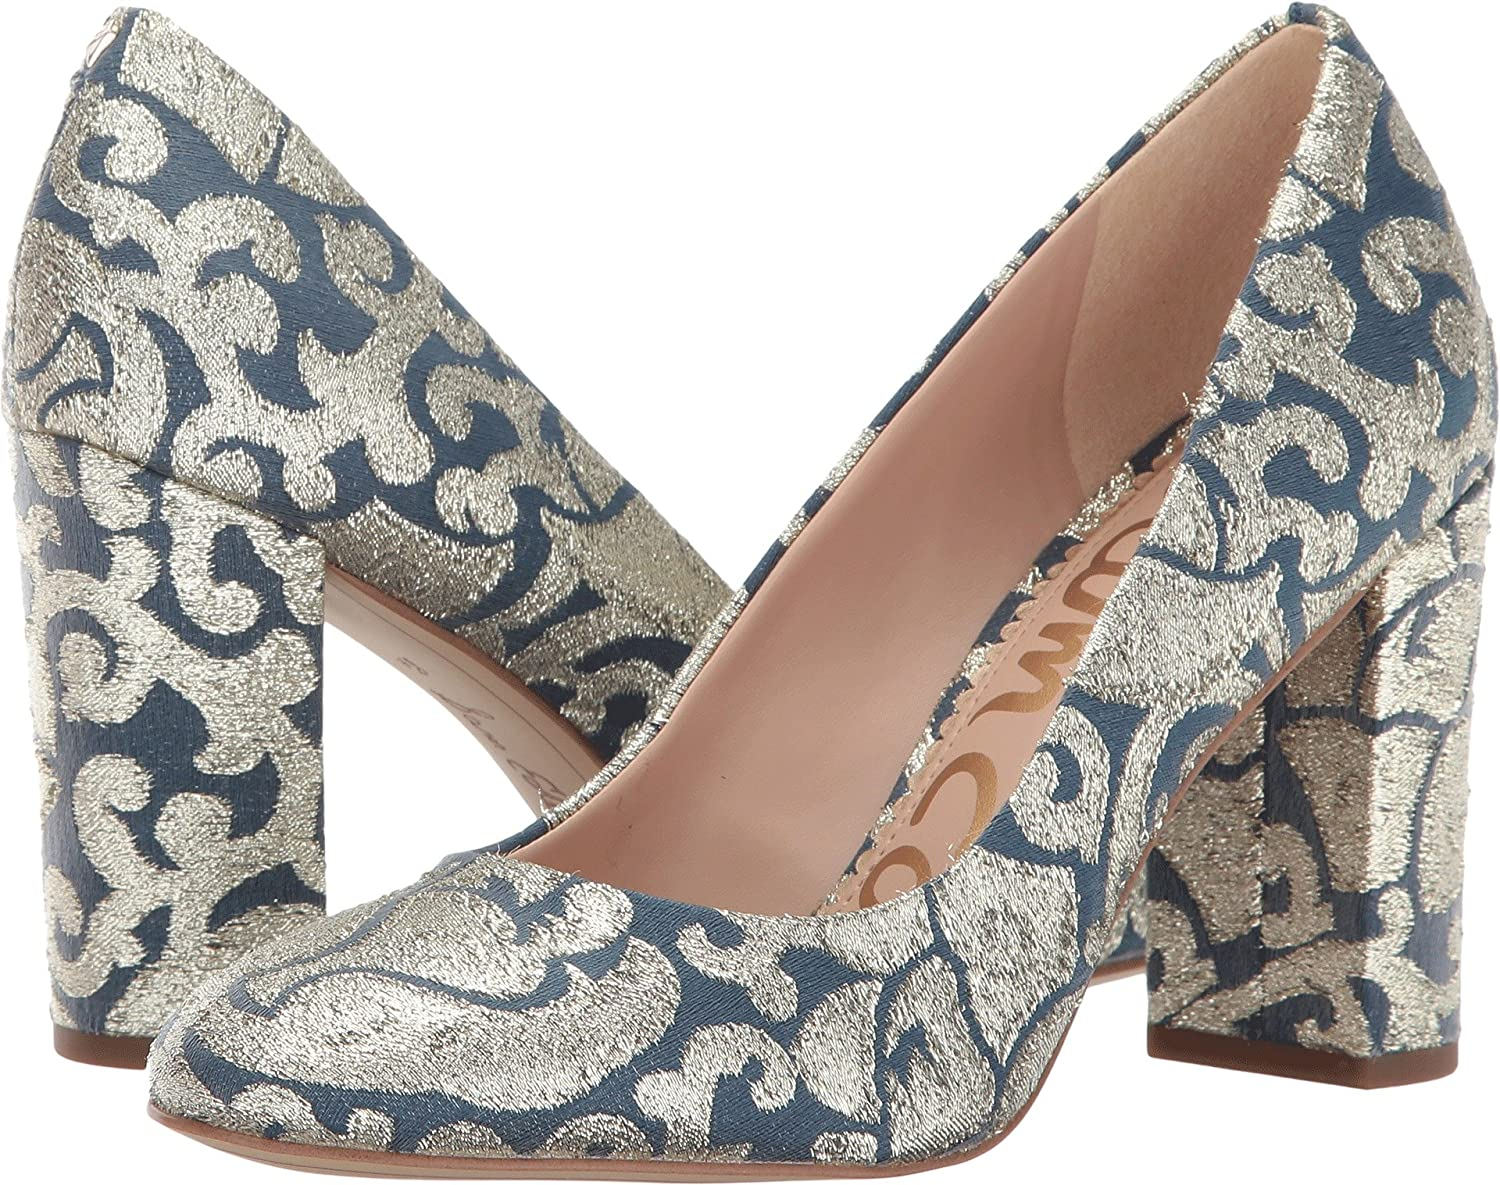 bluee Multi Geometric Tie Fabric Sam Edelman Women's Stillson Pumps